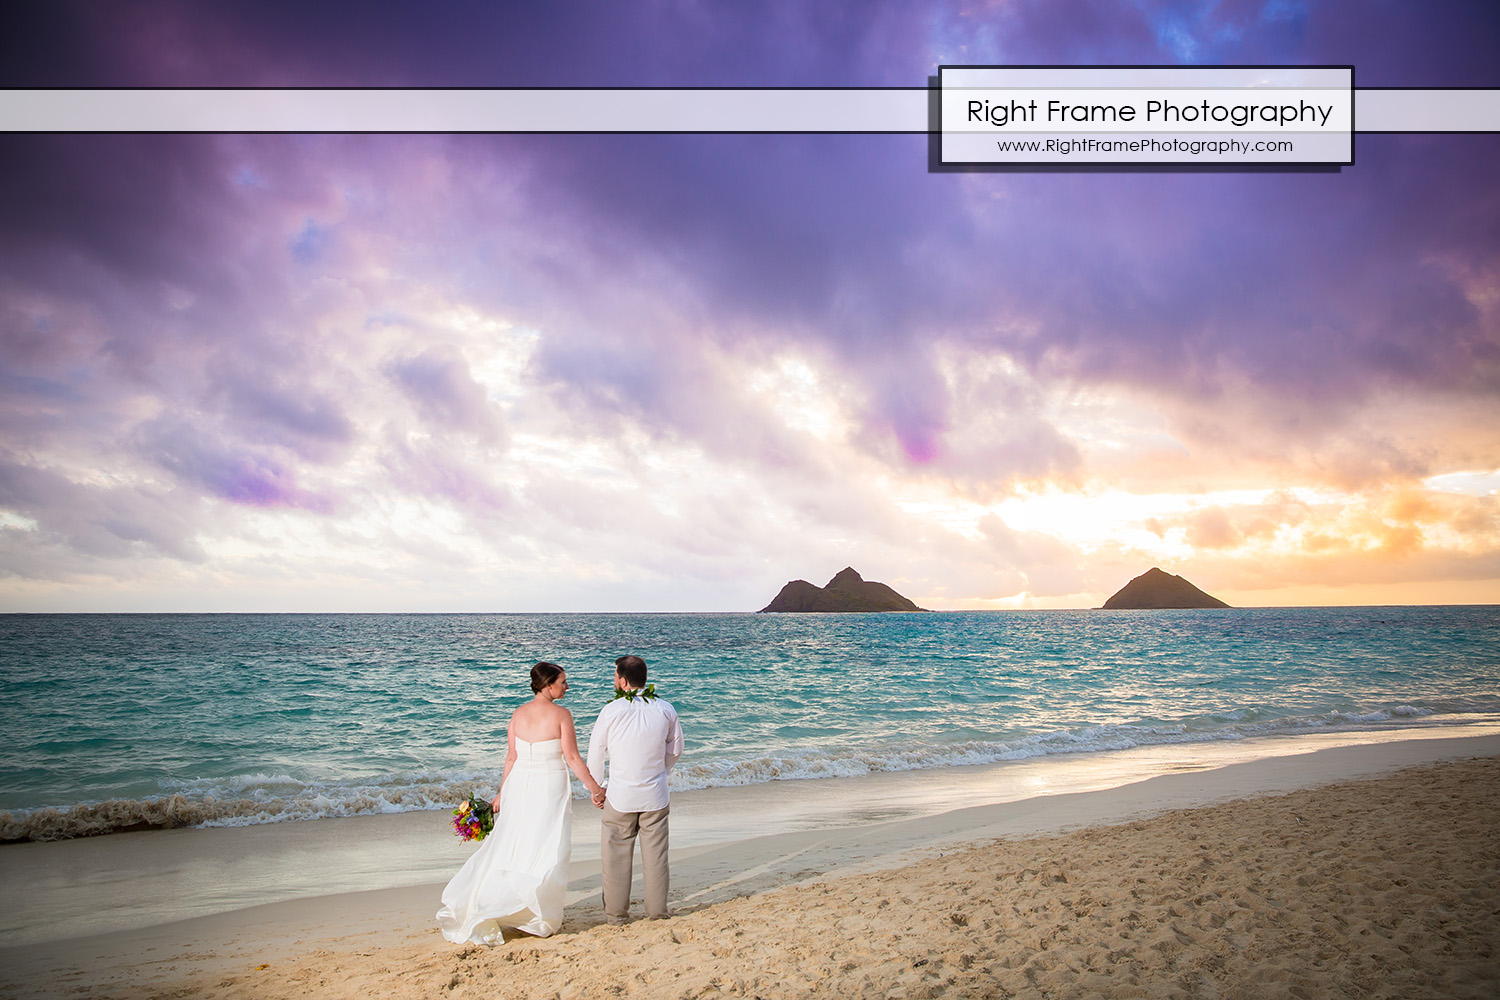 sunrise wedding at lanikai beach oahu hawaii by right frame